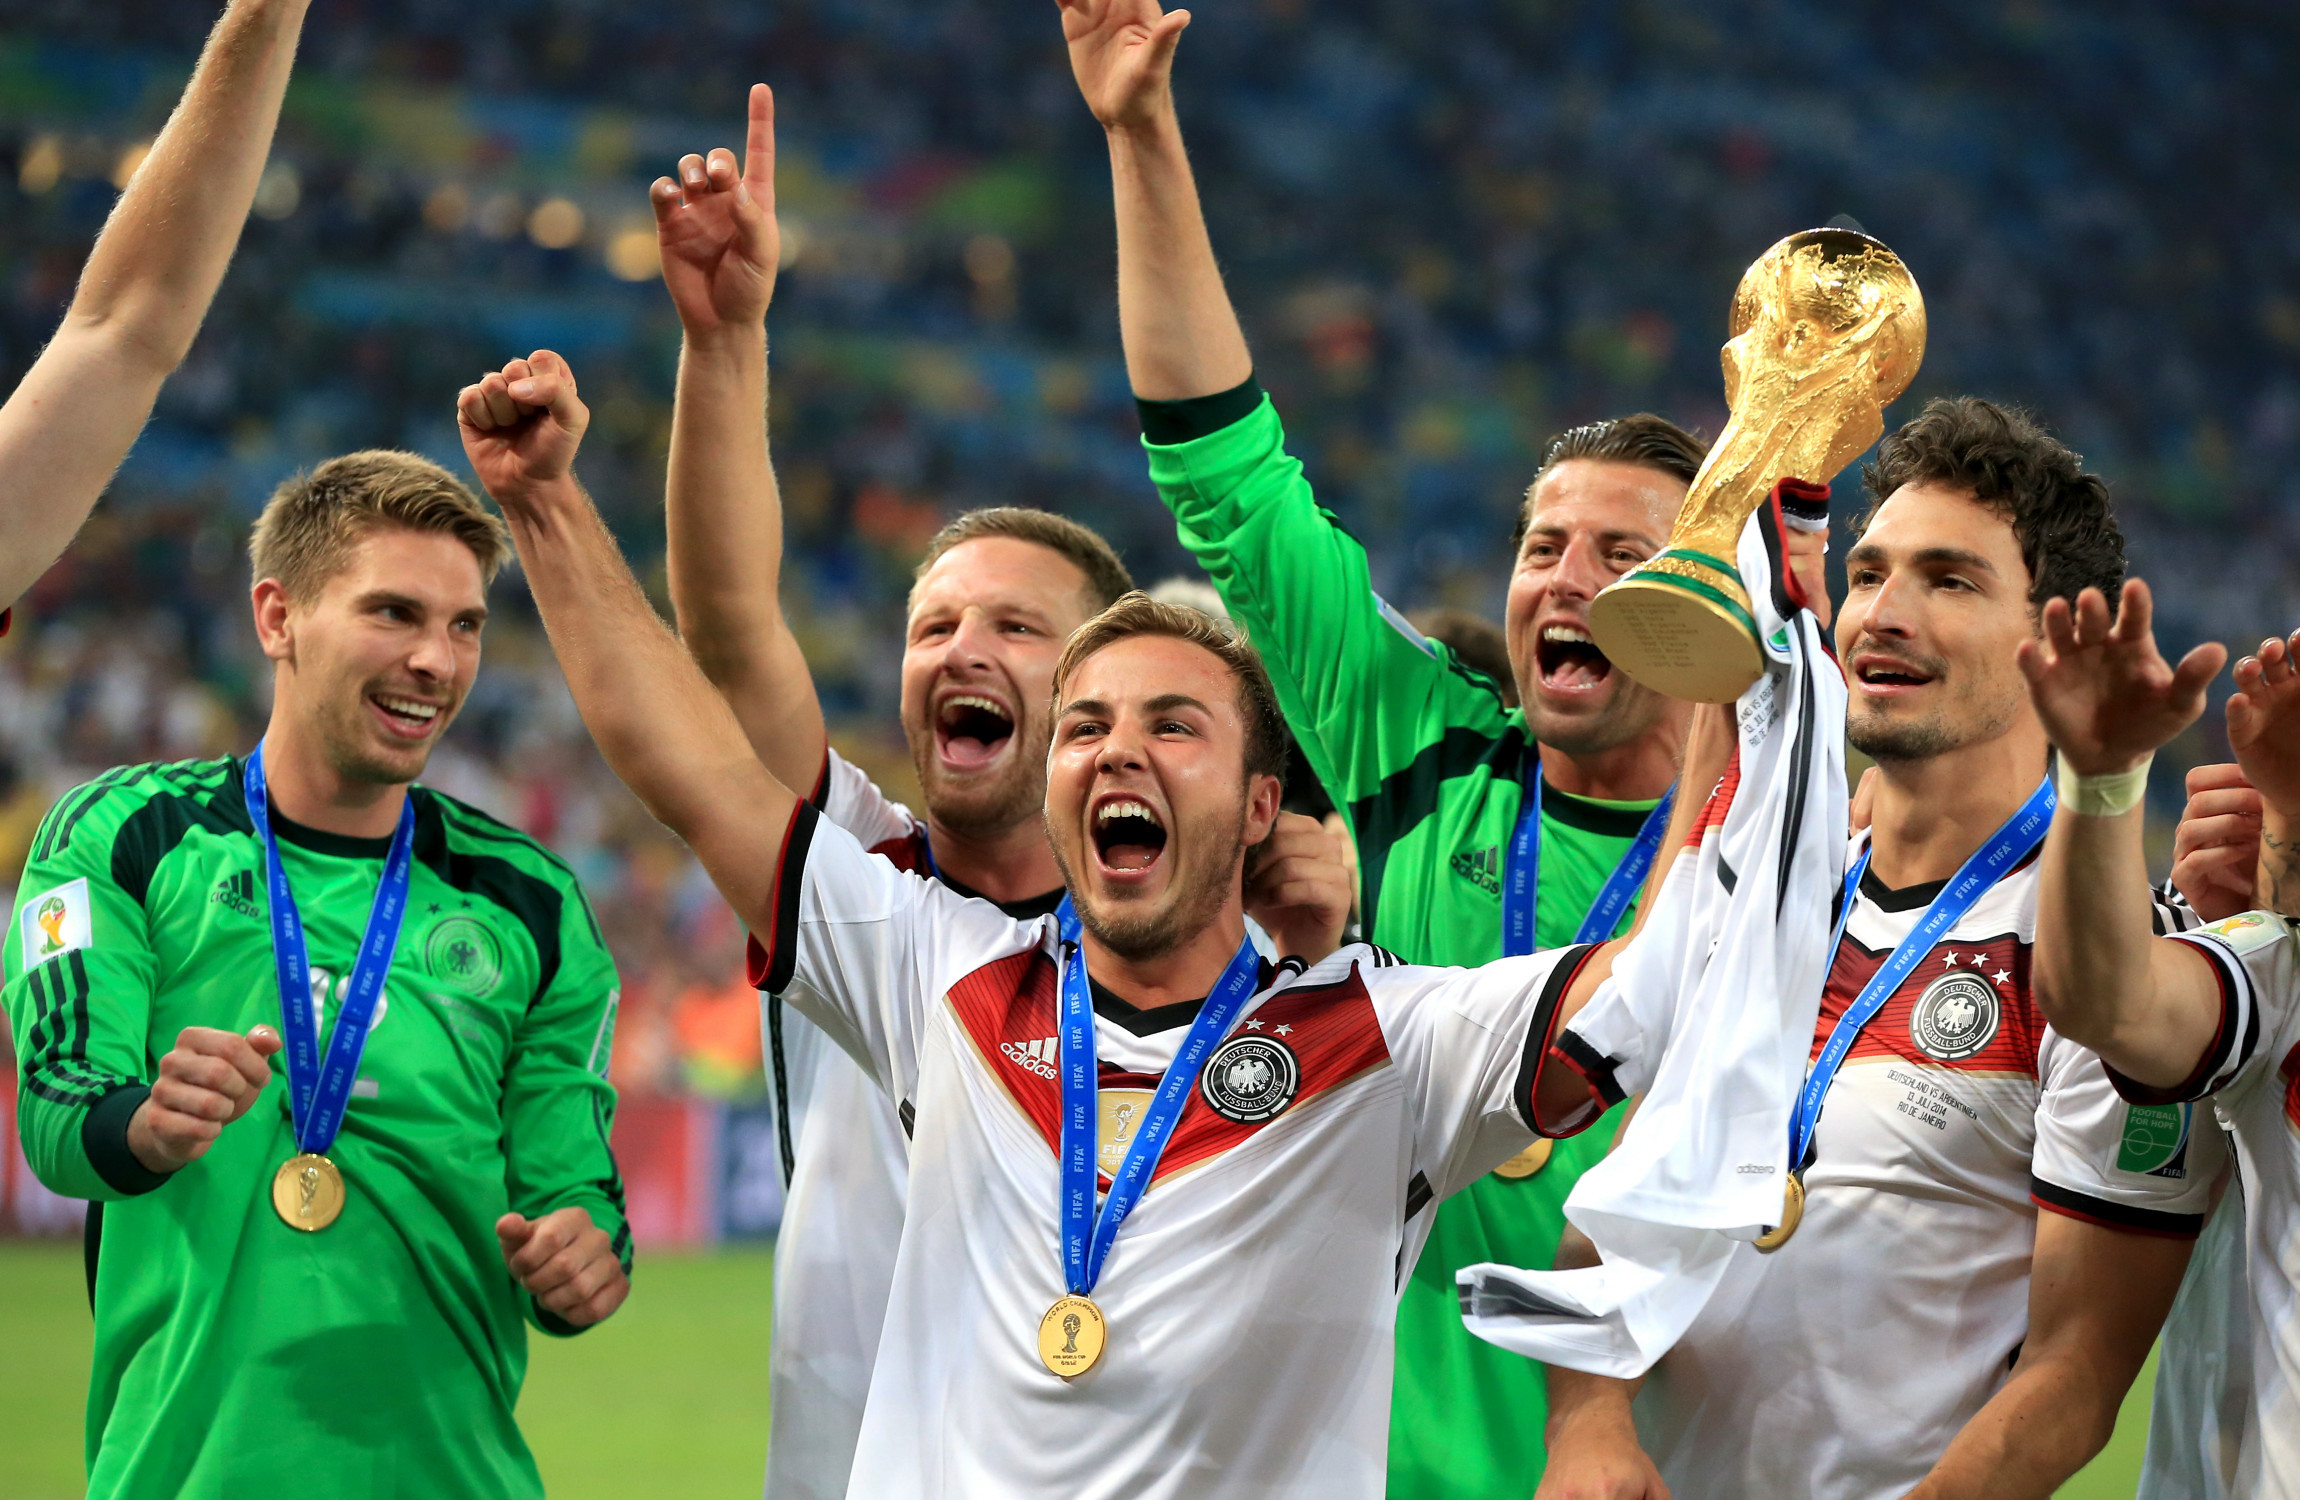 Low pens new Germany deal drops 27-man provisional WC squad